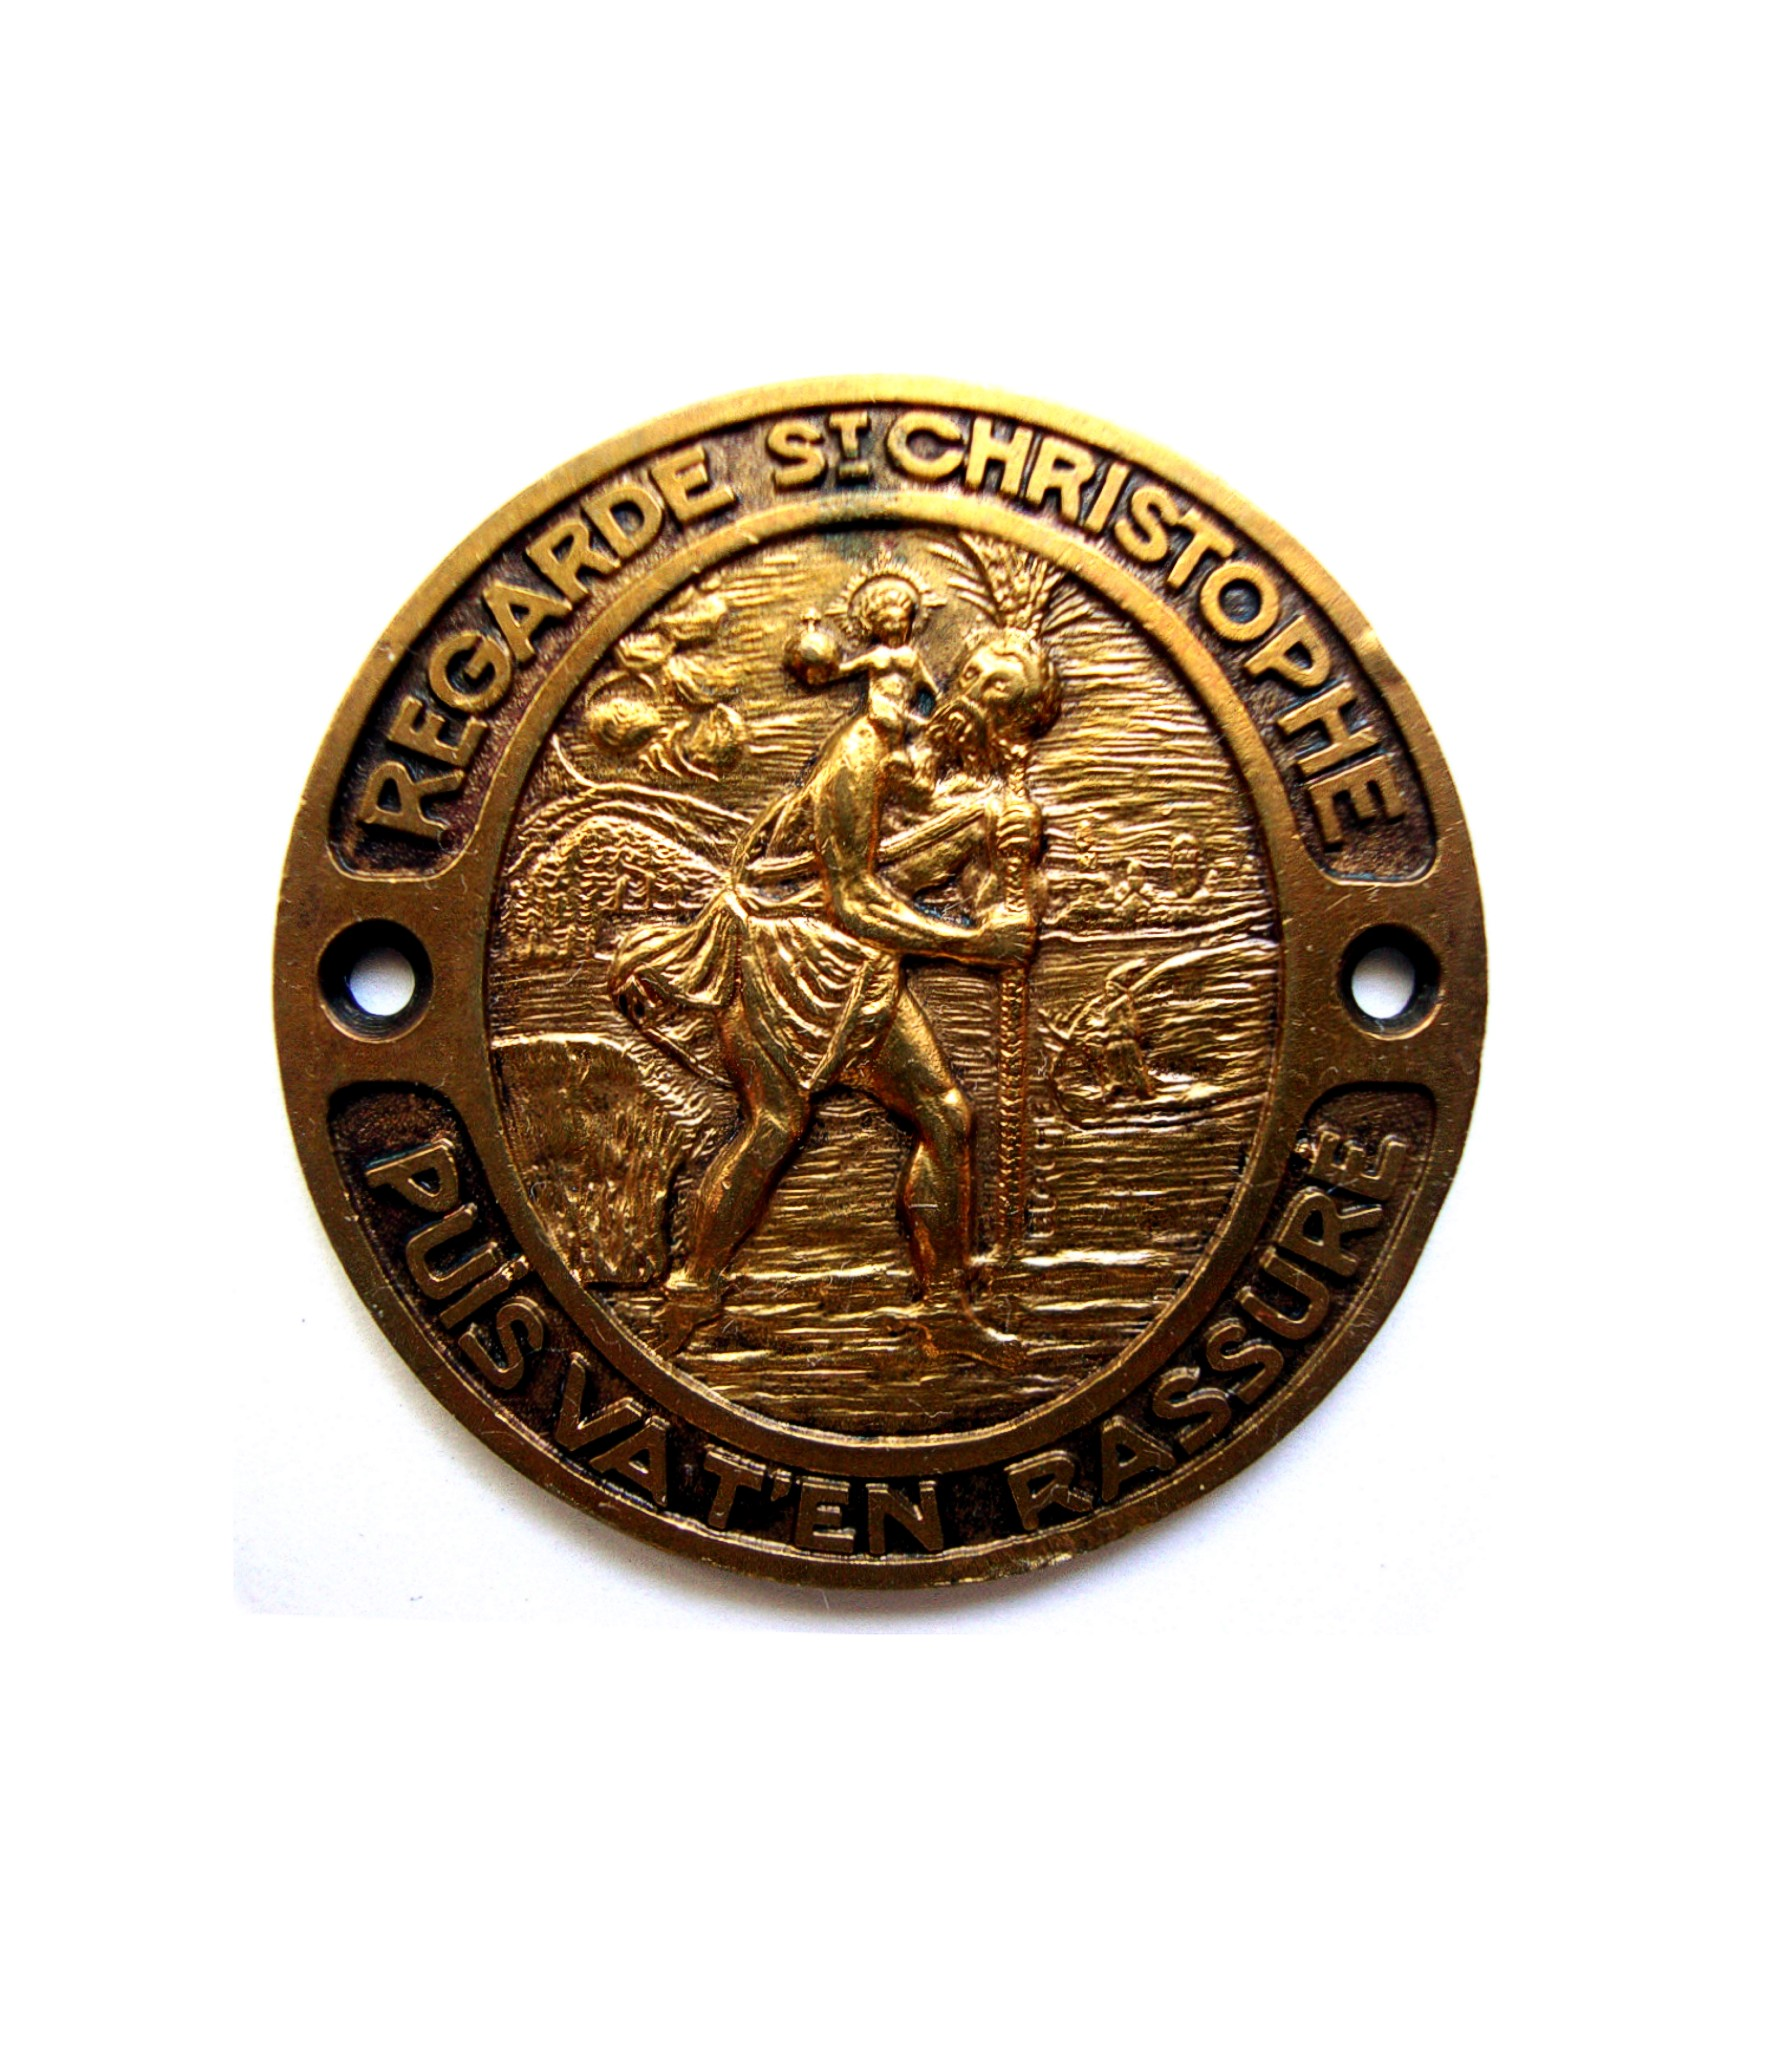 French St.Christopher dashboard badge by Blaché for sale